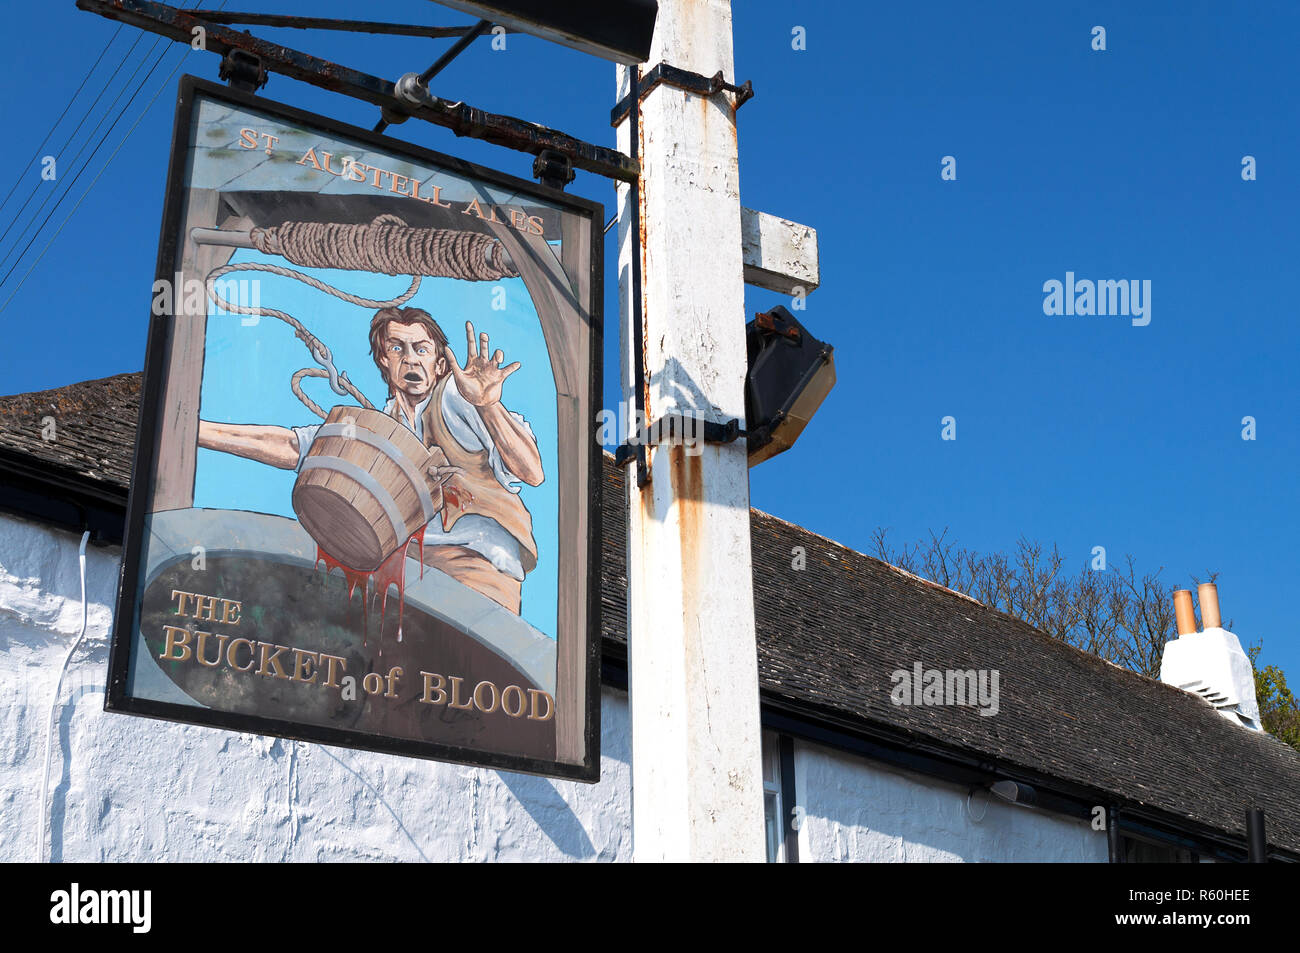 the infamous bucket of blood pub in the village of phillack near hayle, cornwall, england, britain, uk. - Stock Image